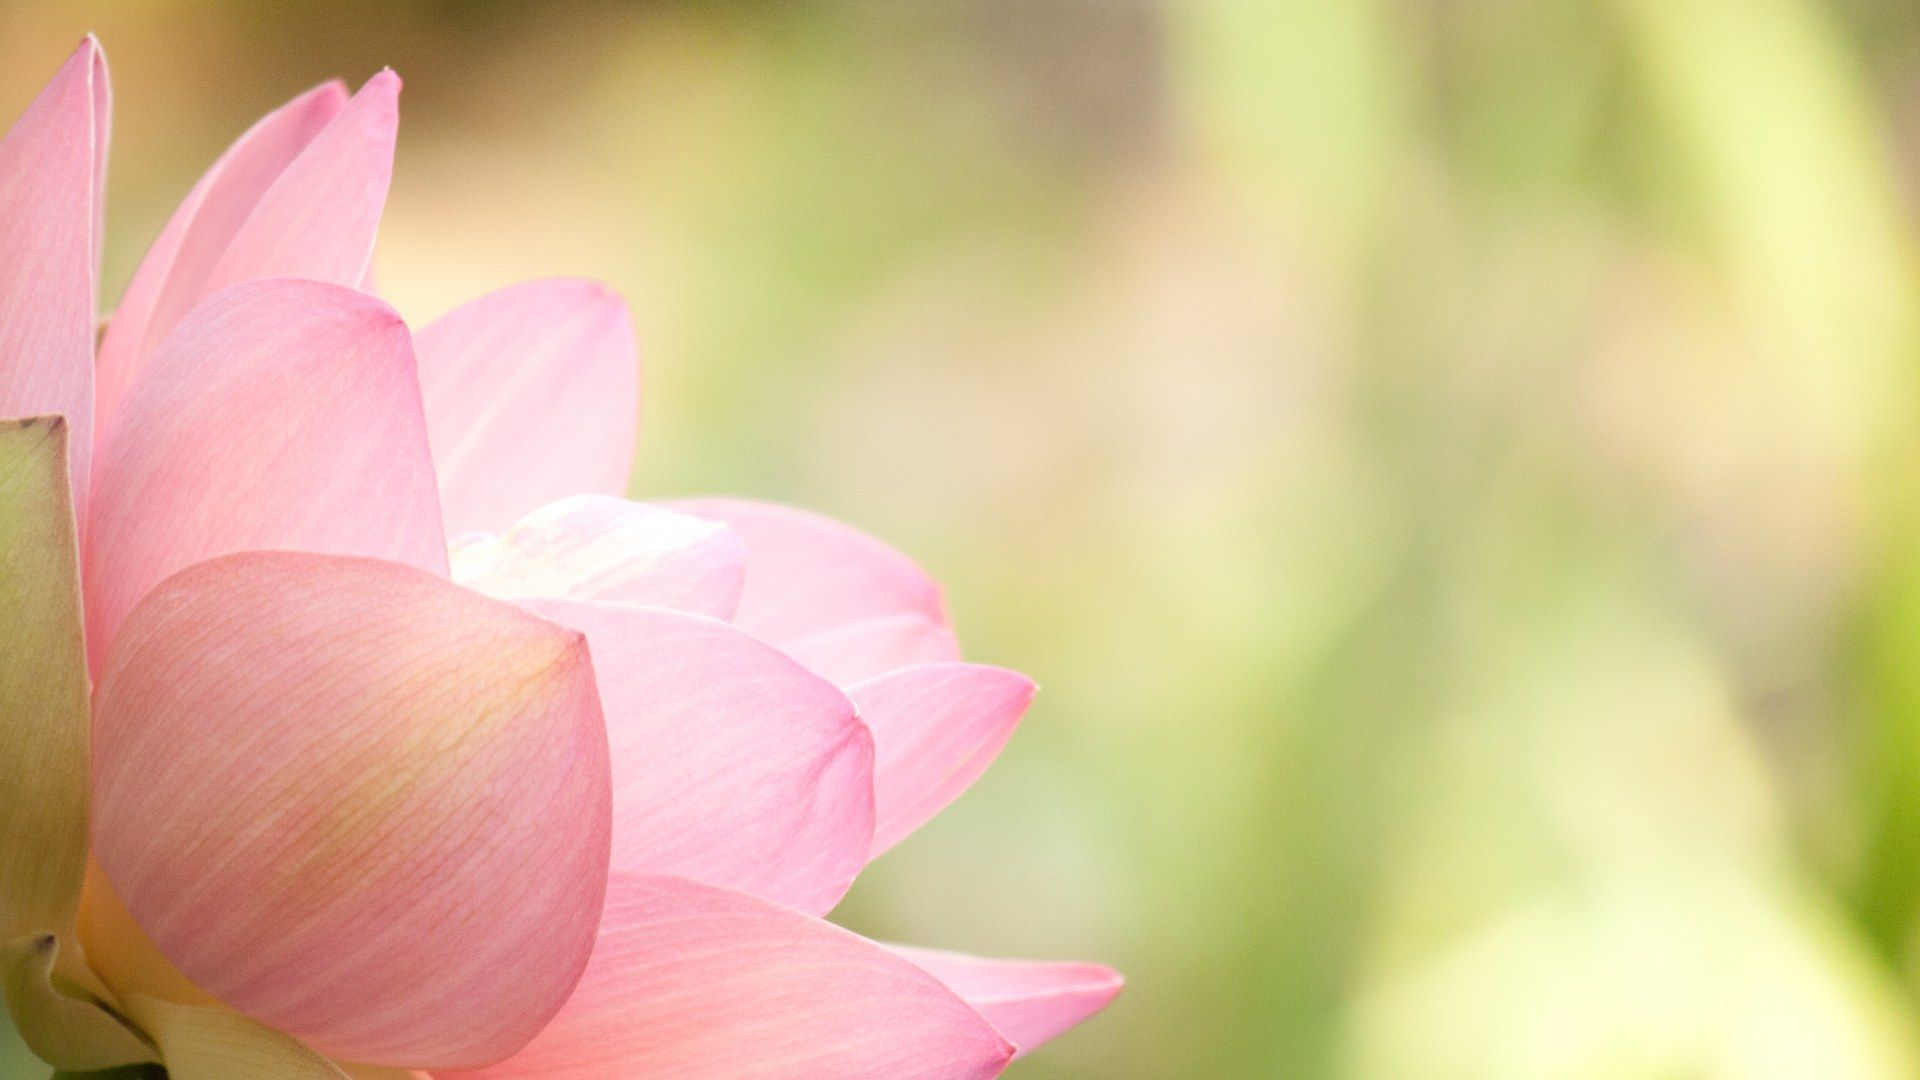 Lotus Flower Wallpapers Images Photos Pictures Backgrounds